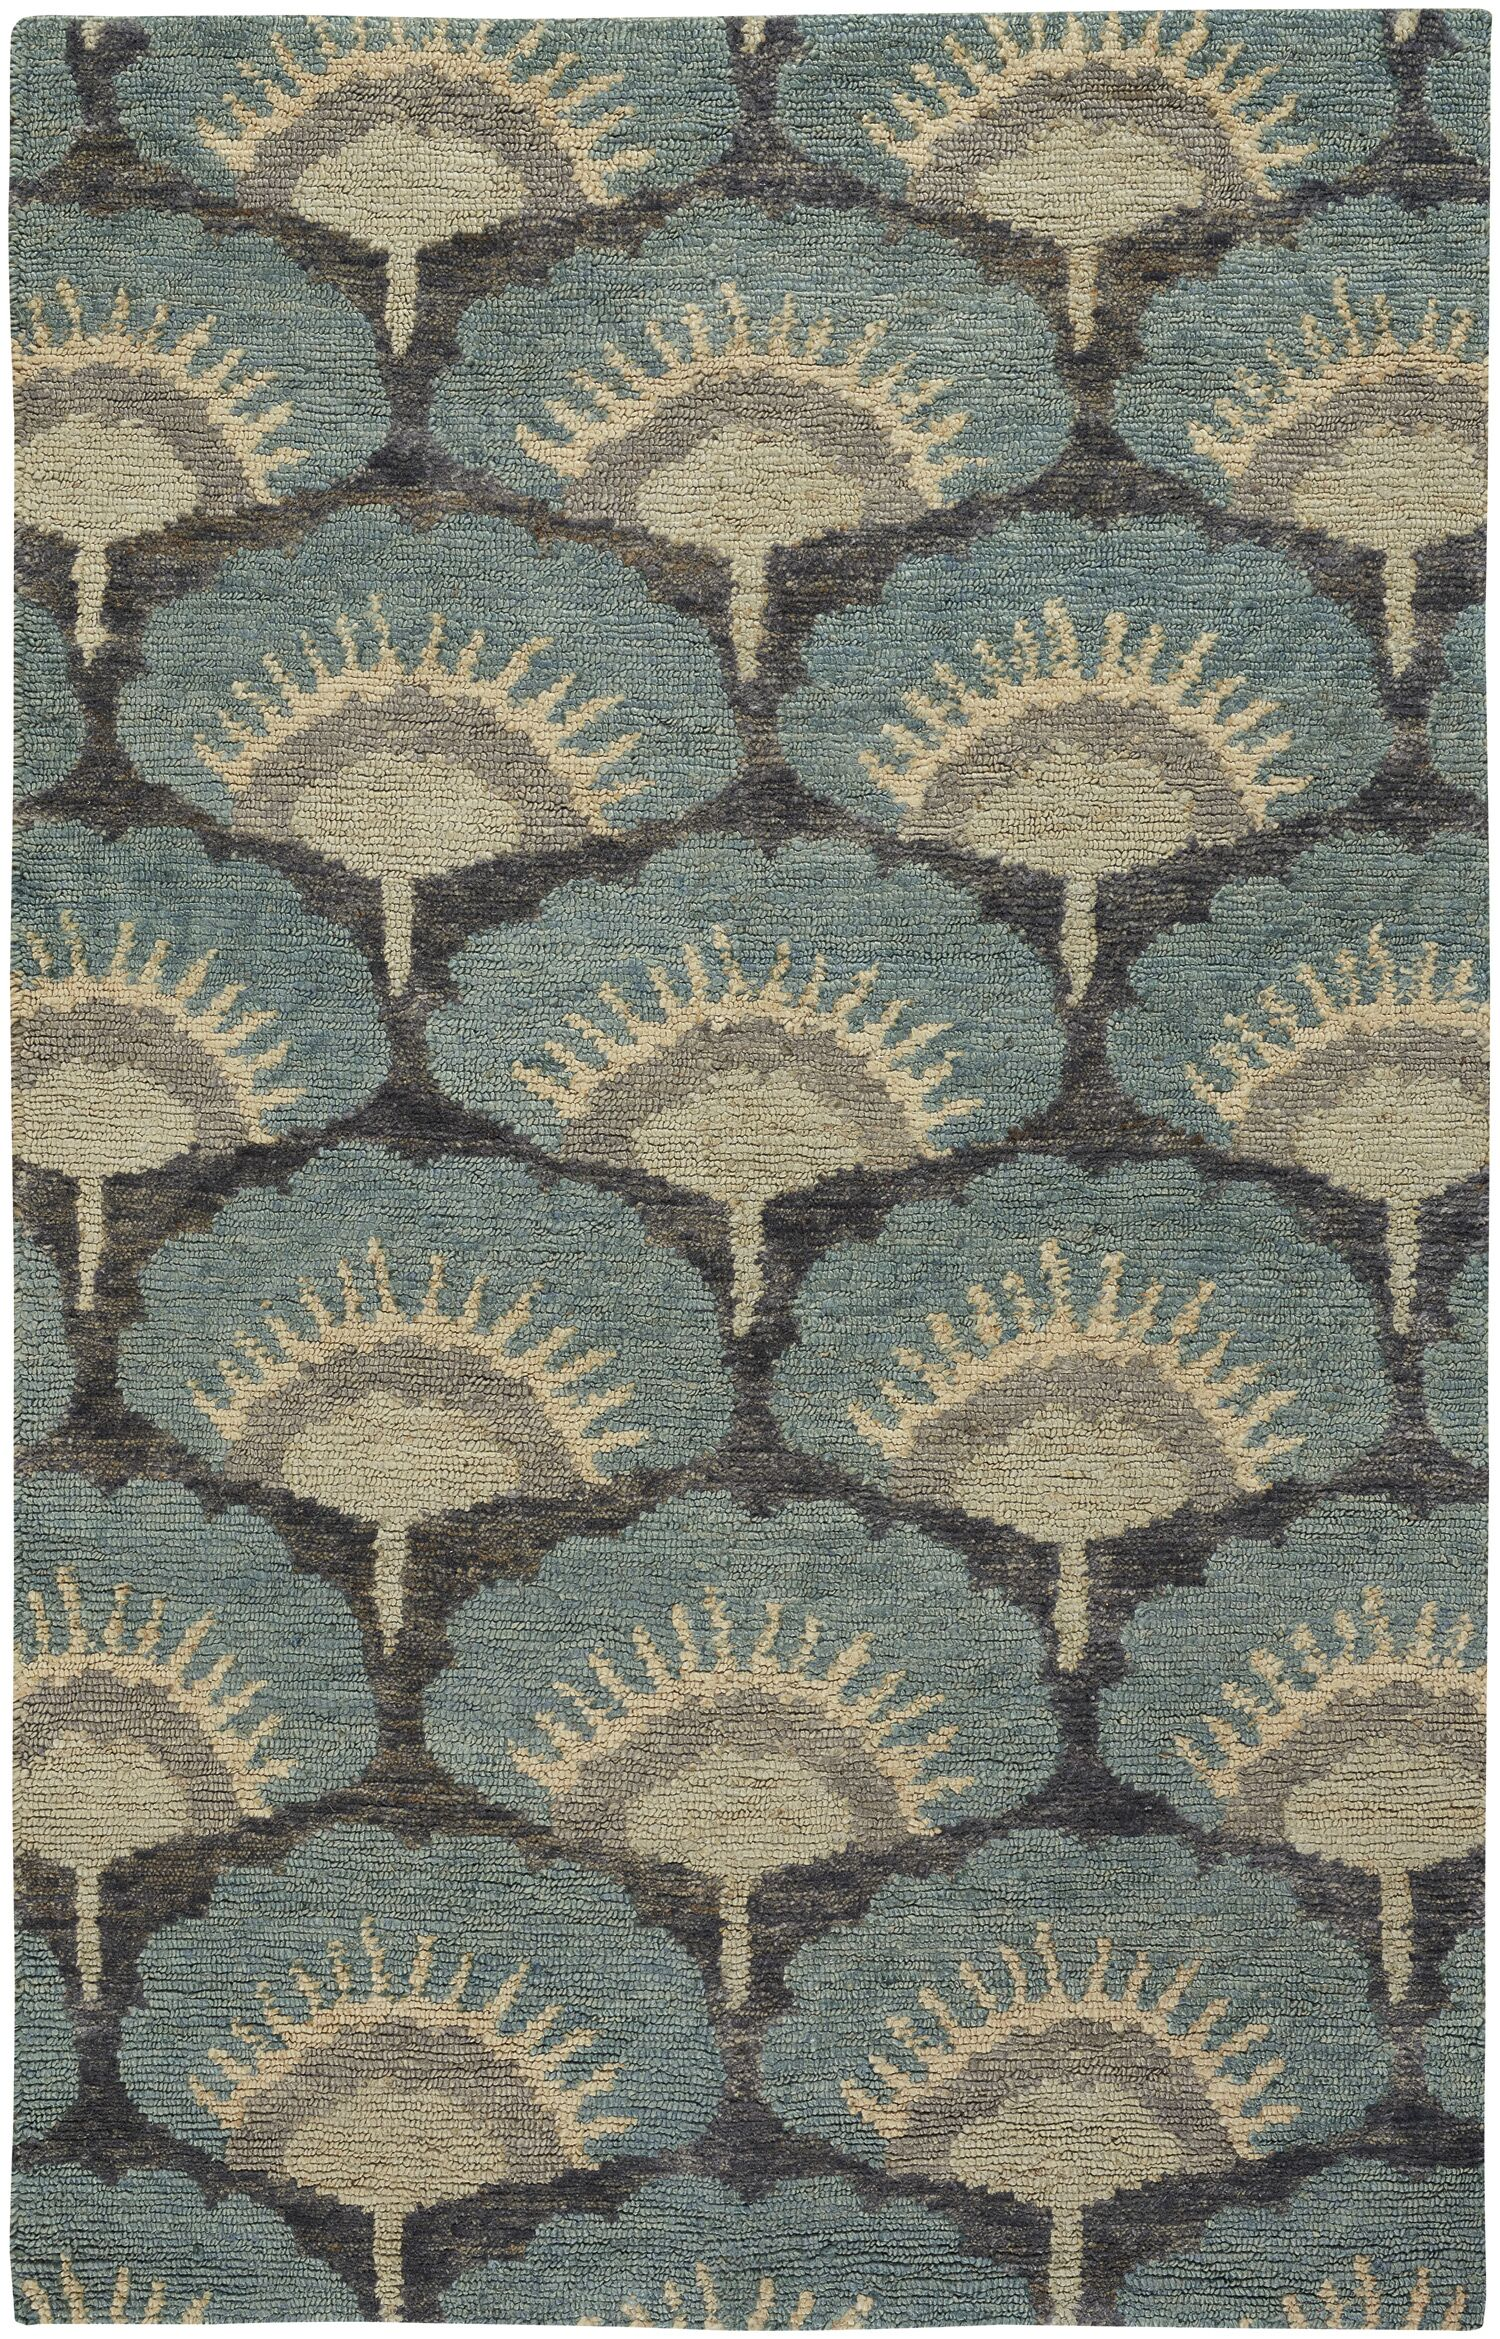 Chappell Hand-Knotted Blue Area Rug Rug Size: 9' x 12'